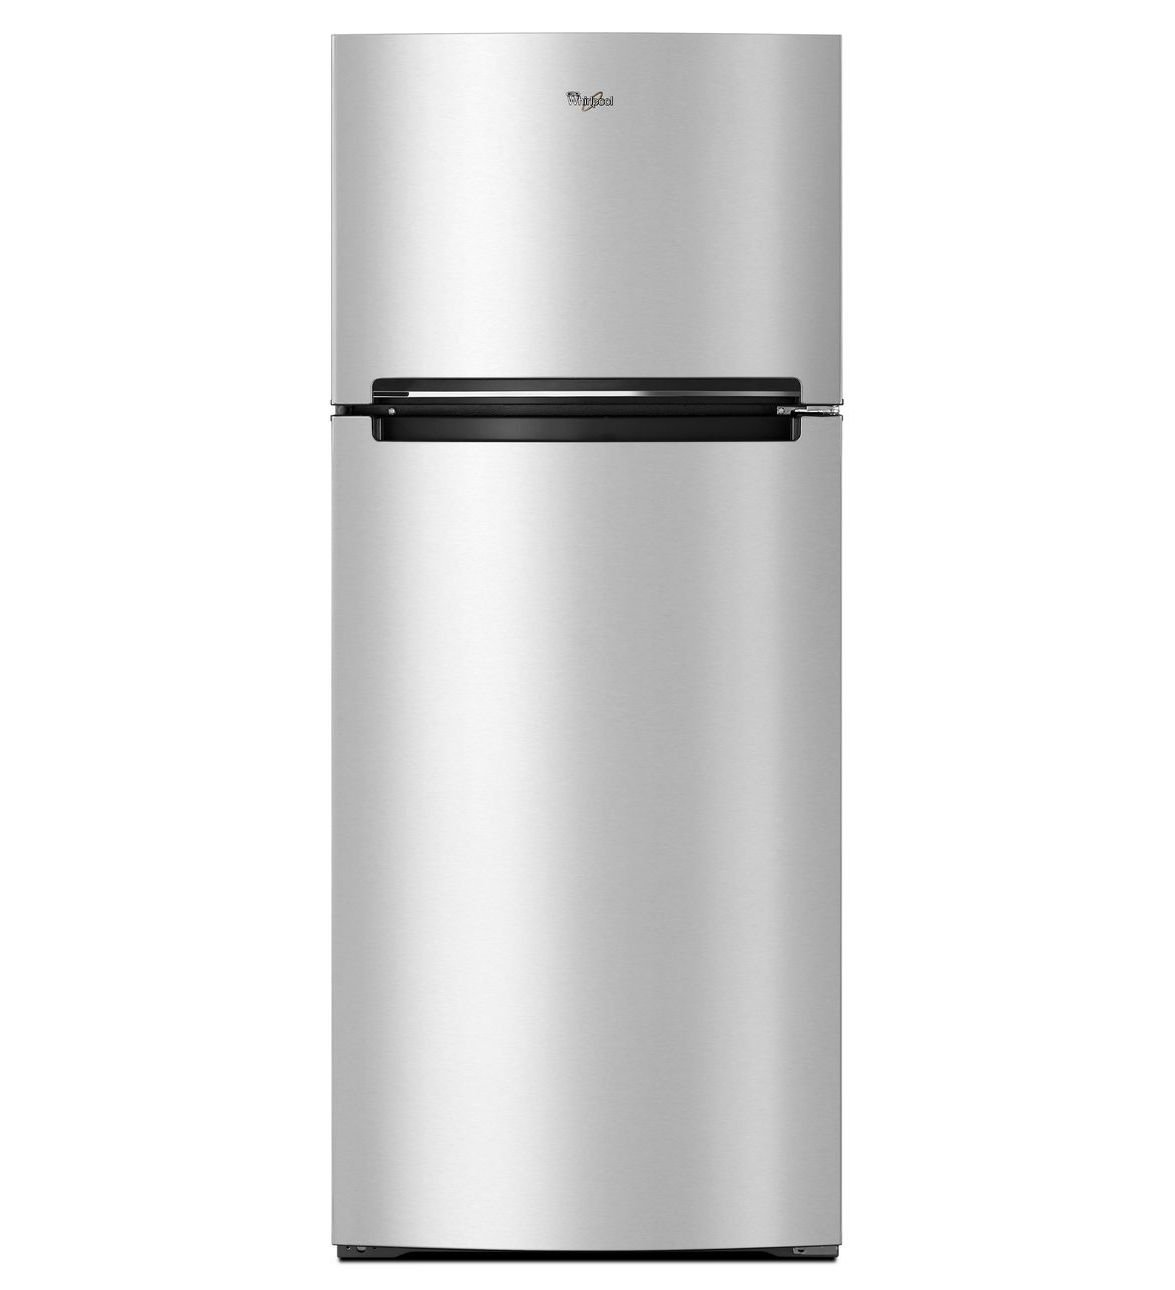 Whirlpool 28 Inch Top Freezer Refrigerator - 18 cu. ft., Stainless Steel